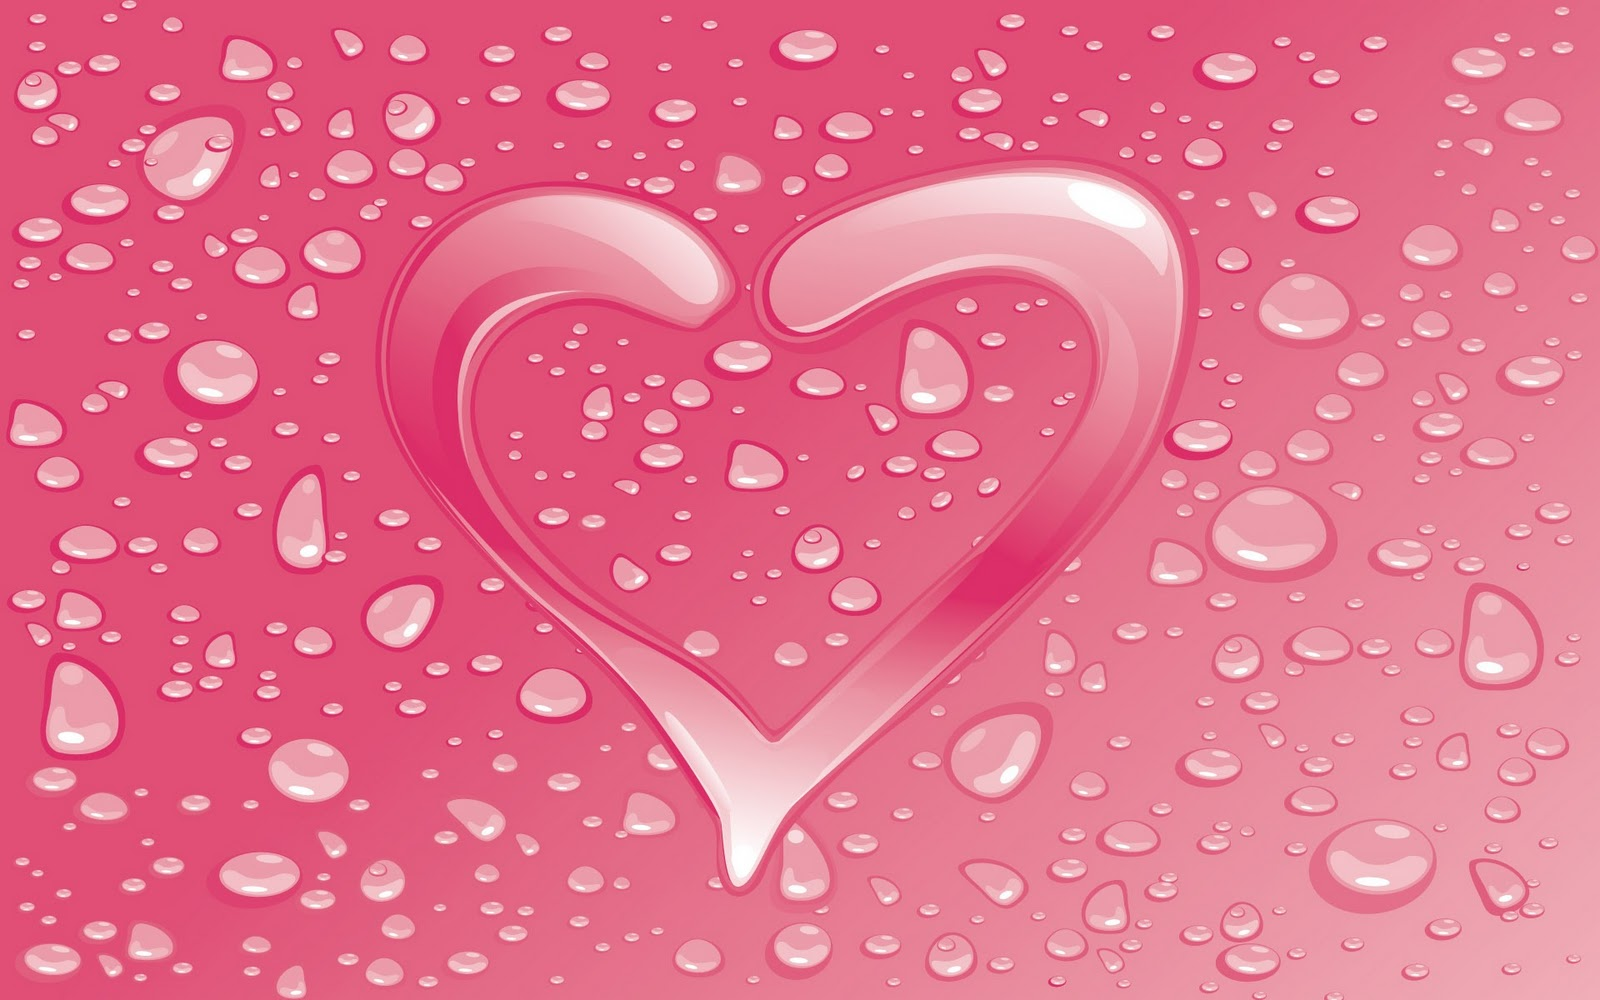 Valentine's Day Heart Love Fresh Wallpapers Seen On www.coolpicturegallery.us